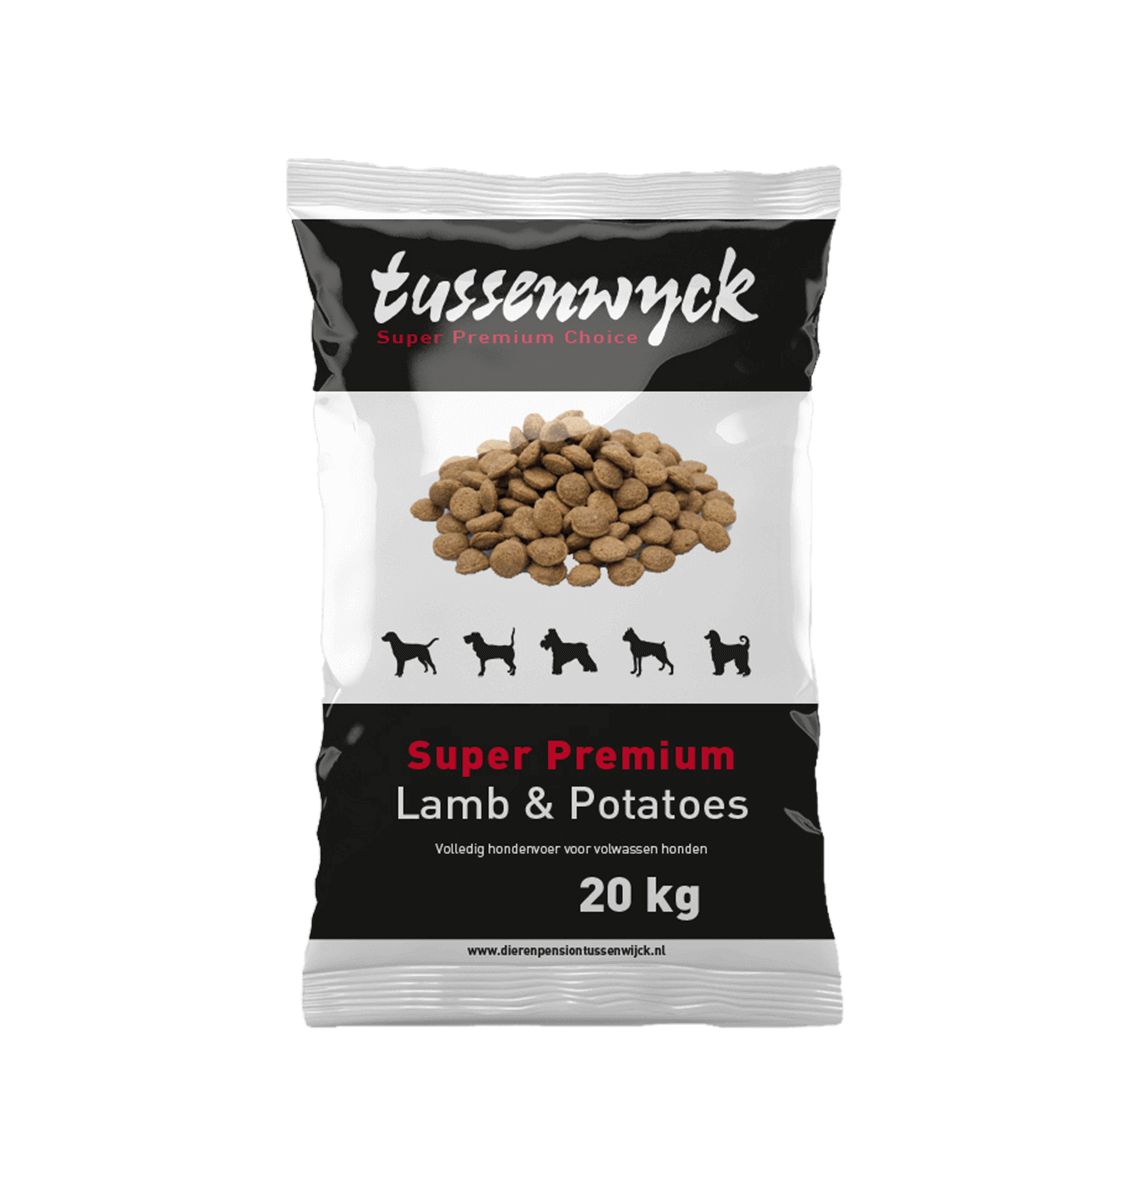 Super premium Lamb & Potatoes